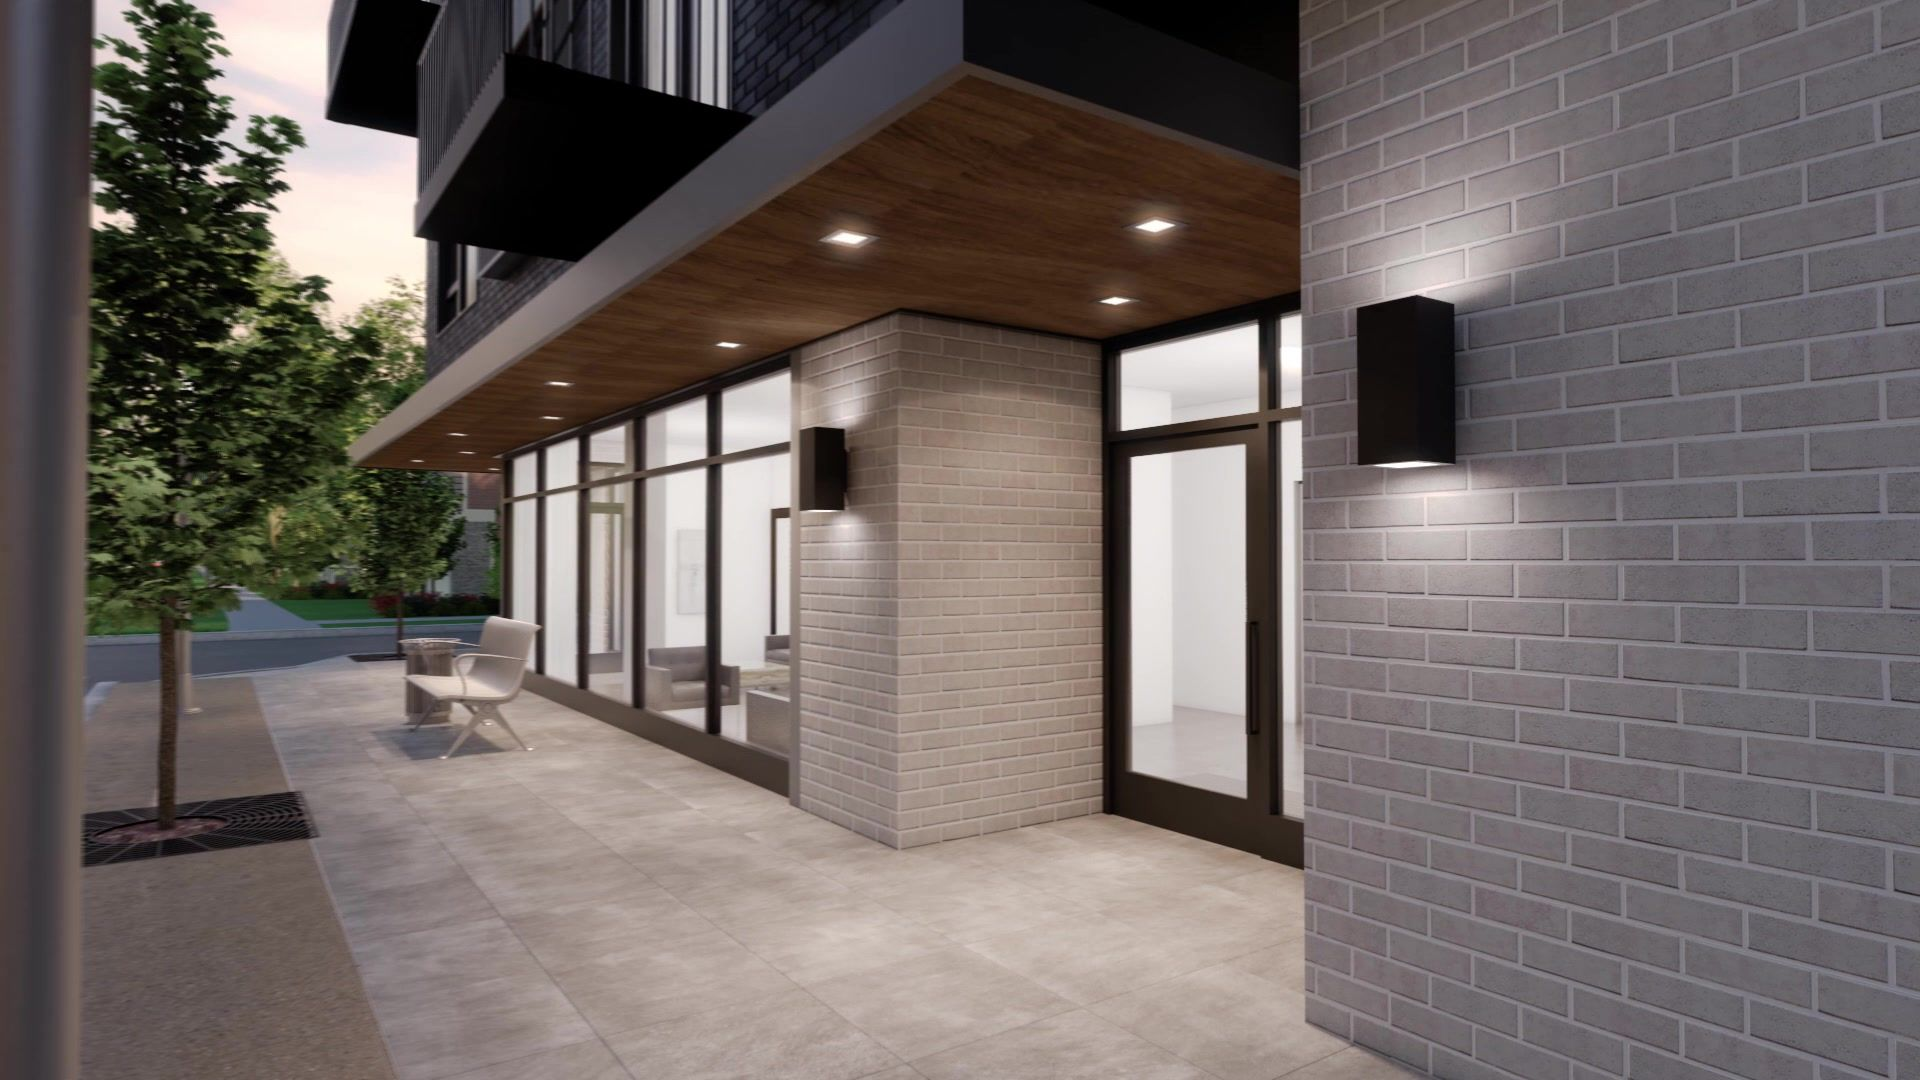 Patio-in-501 PLAN-at-750 Forest-in-Birmingham